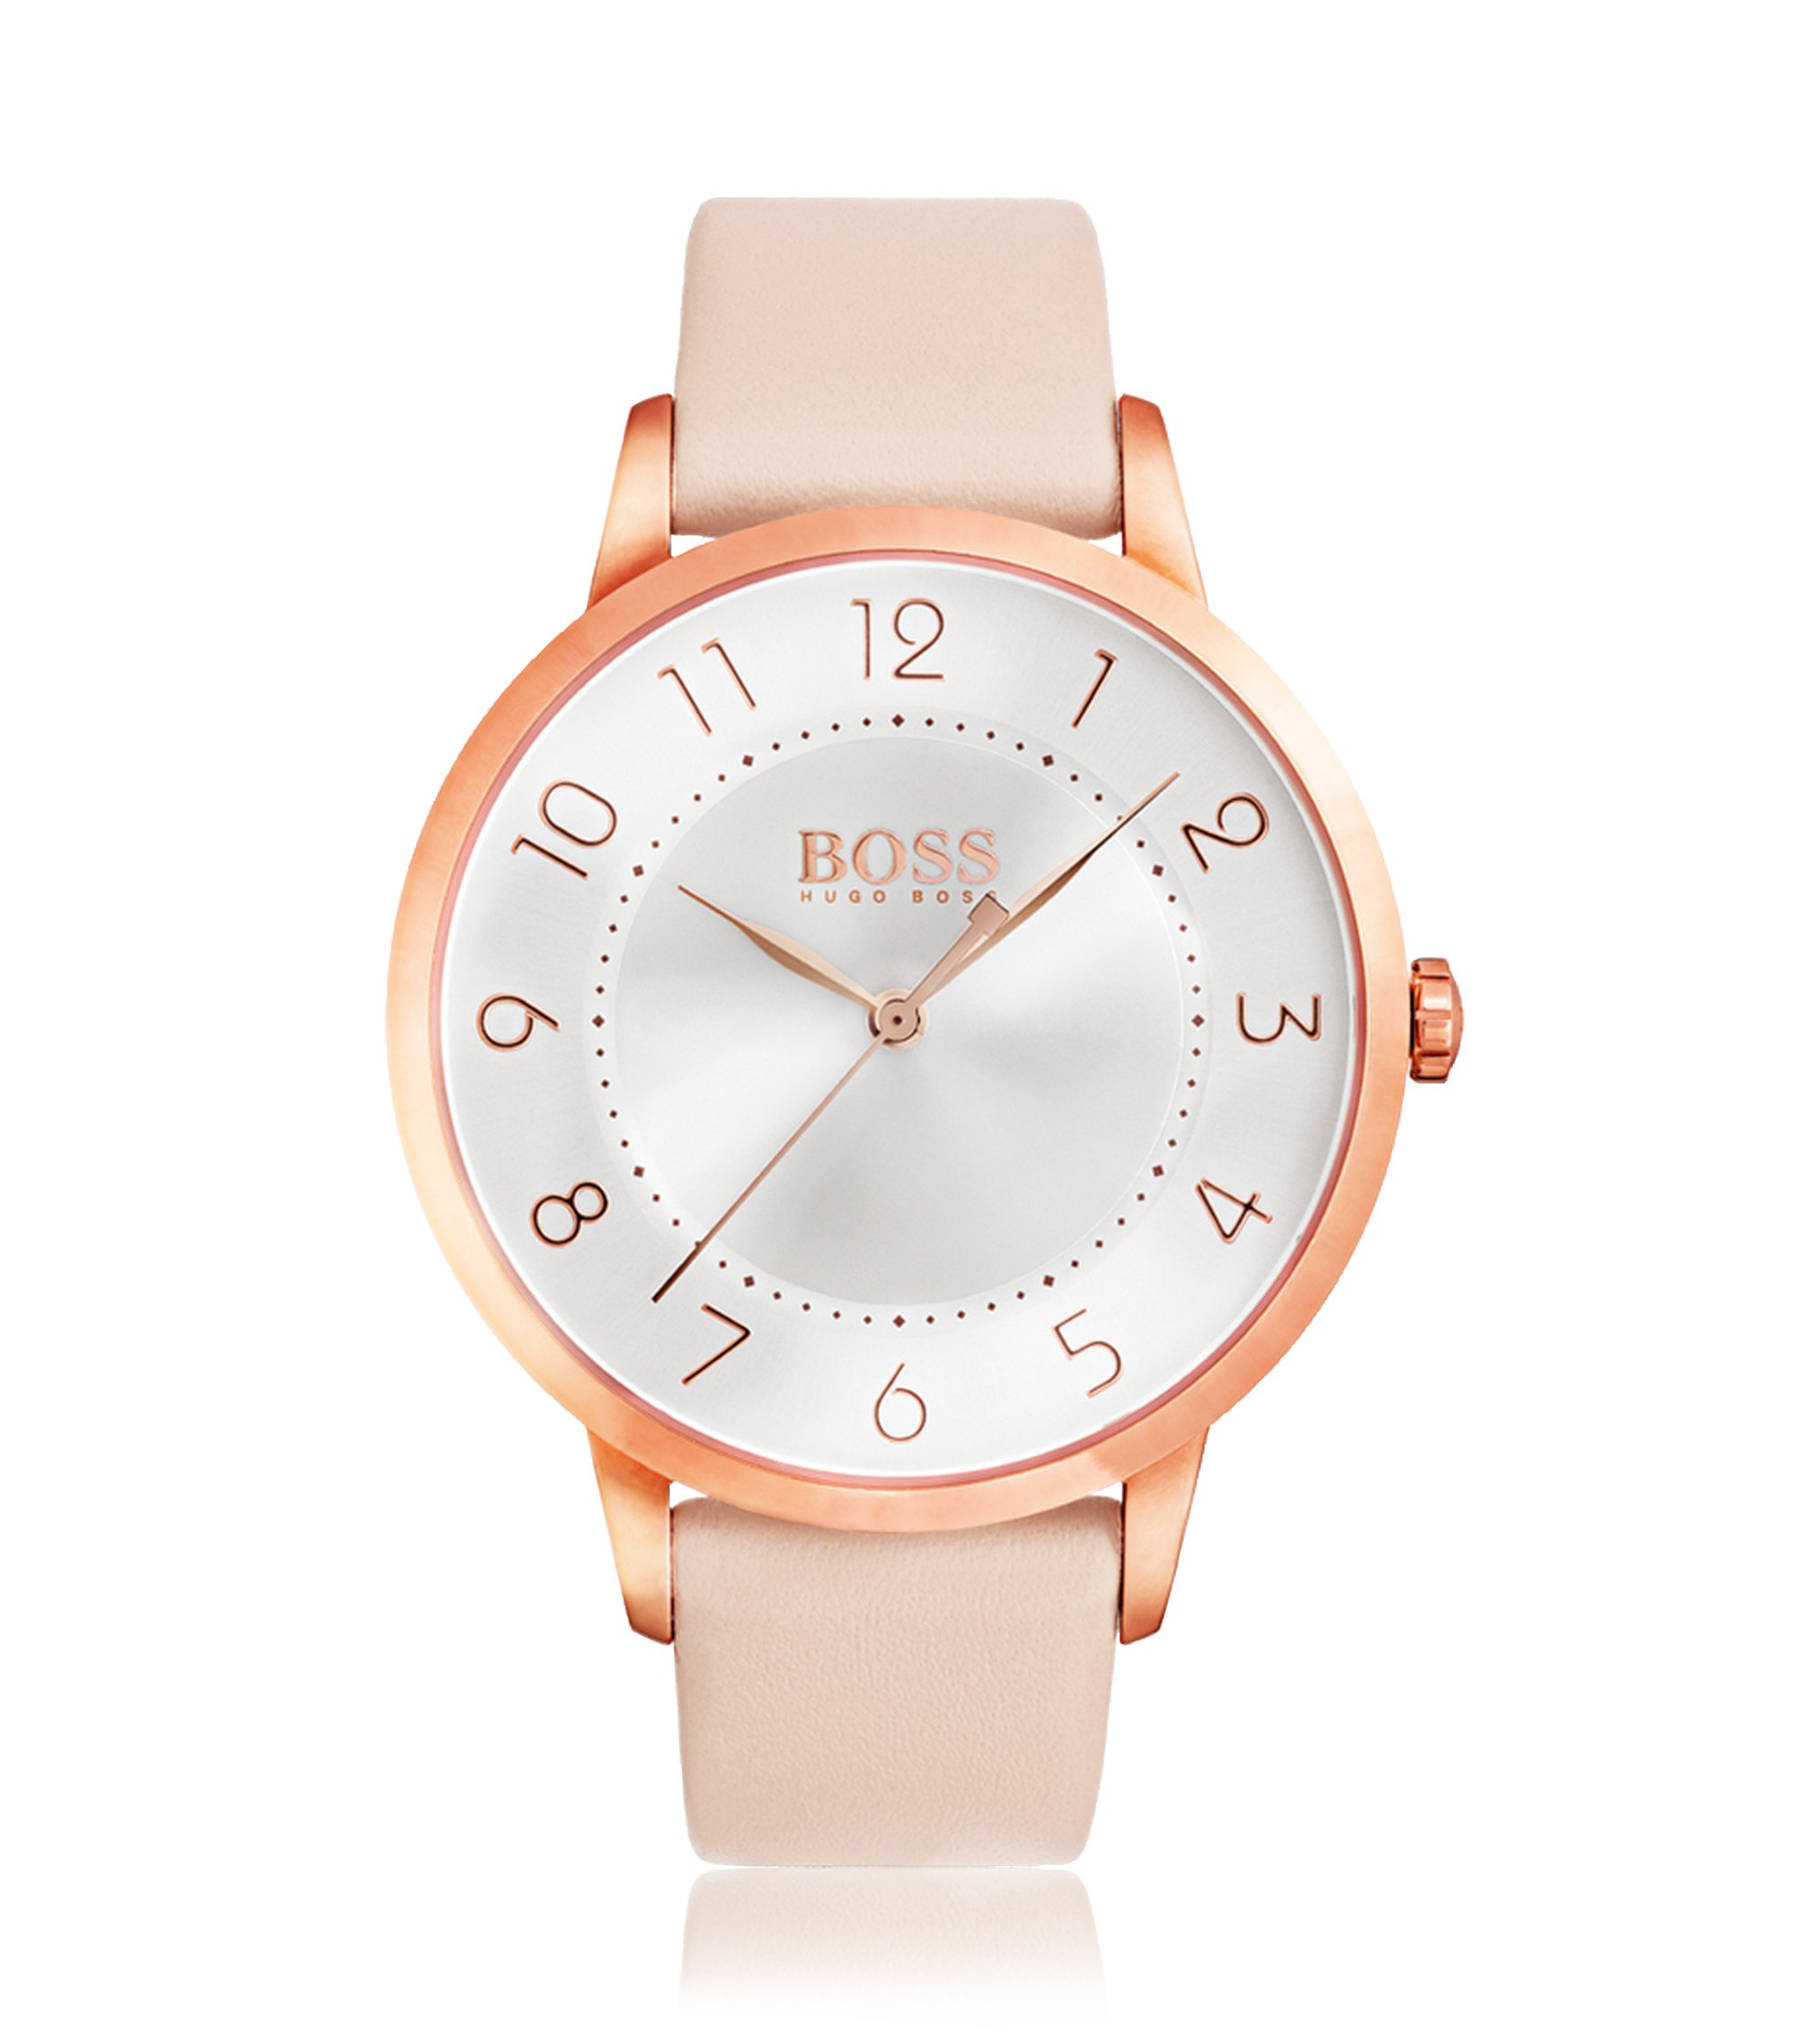 Eclipse, Rose Gold–Tone & Leather Watch | 1502407, Assorted-Pre-Pack